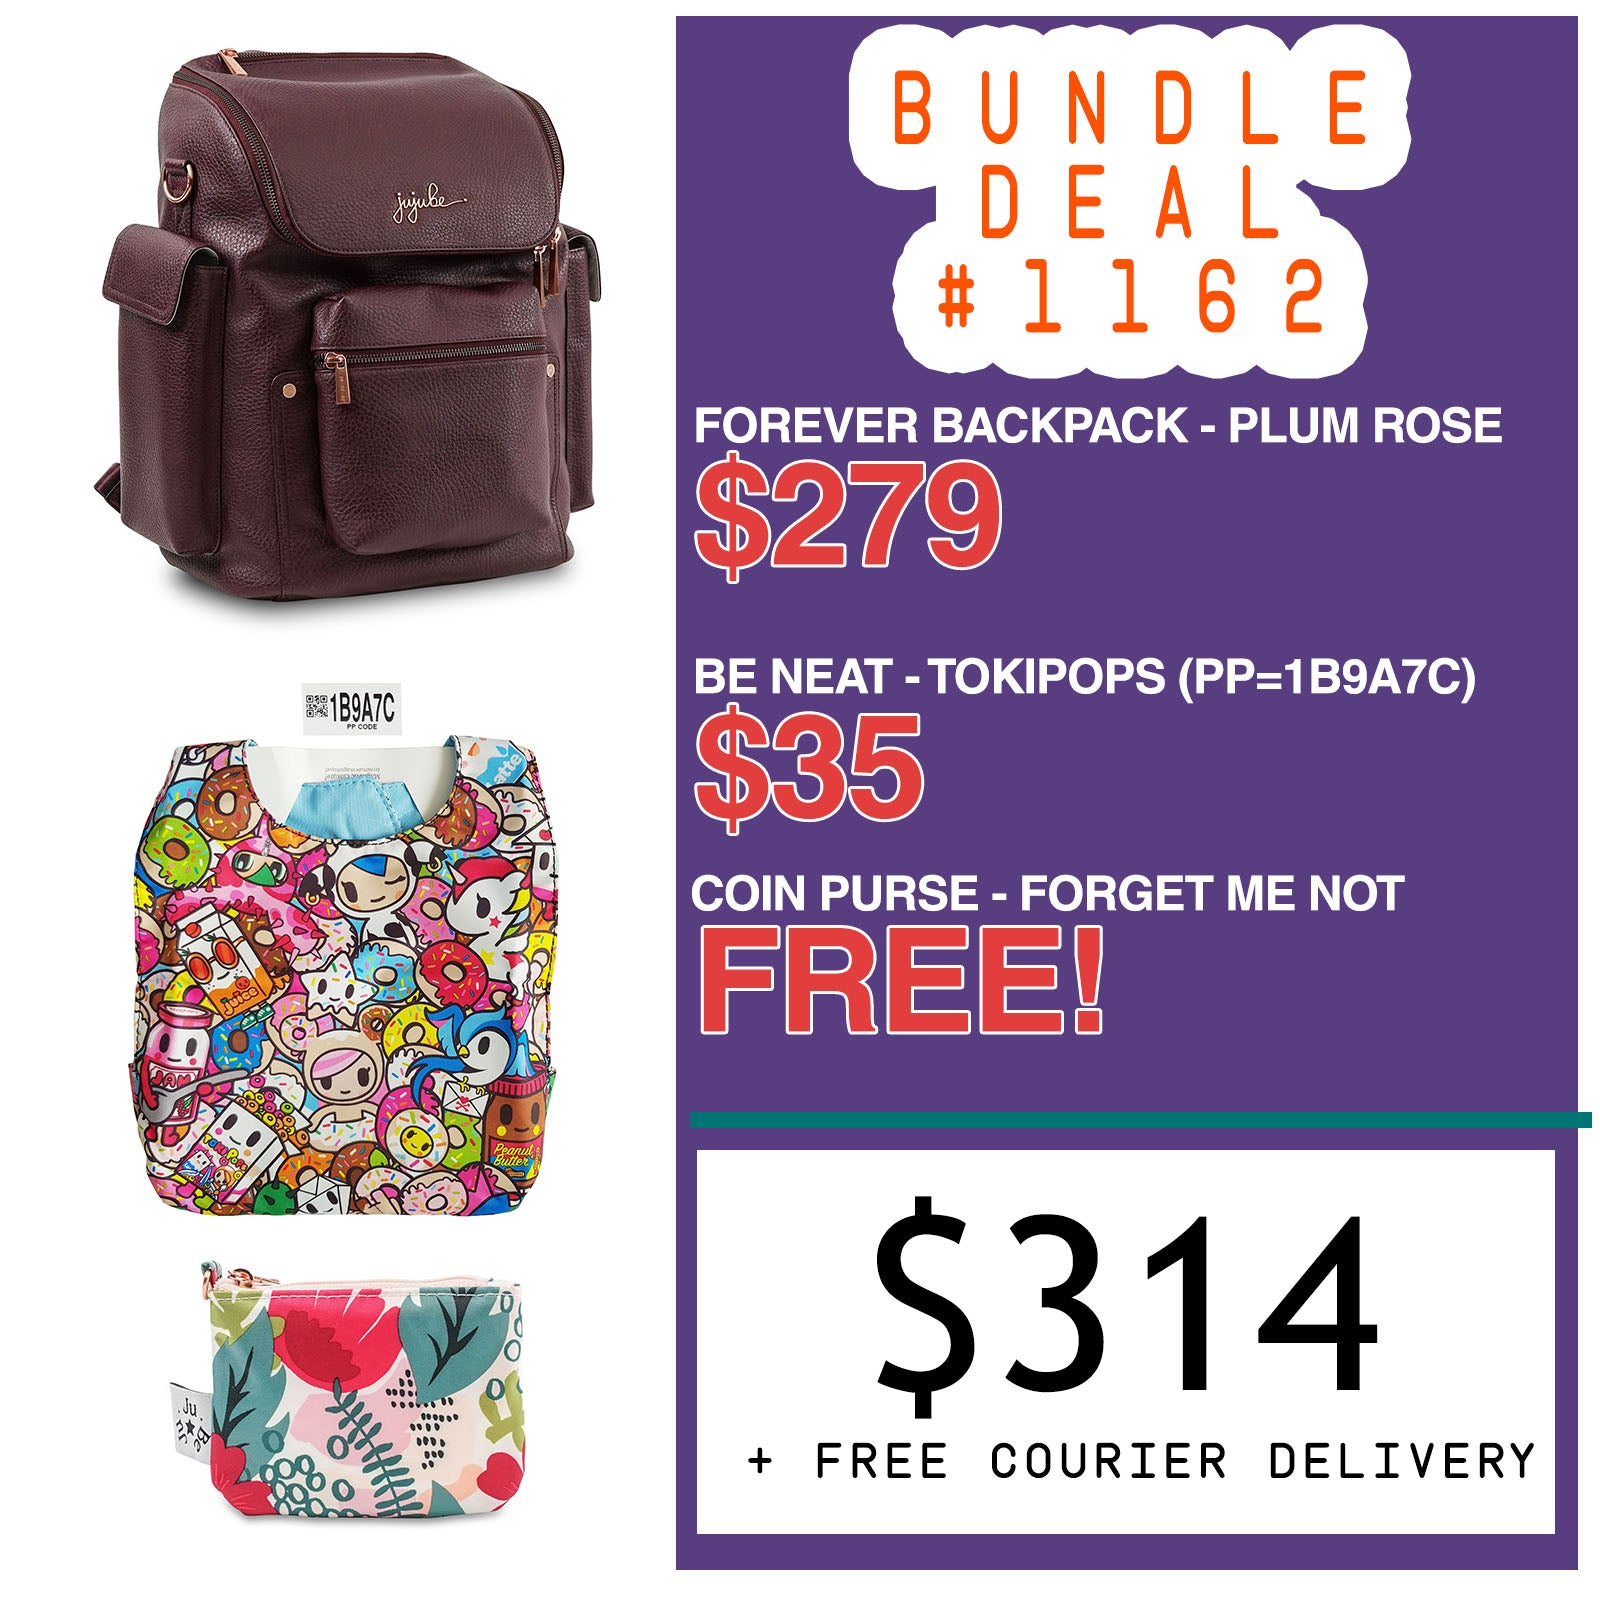 Jujube Bundle Deal 1162